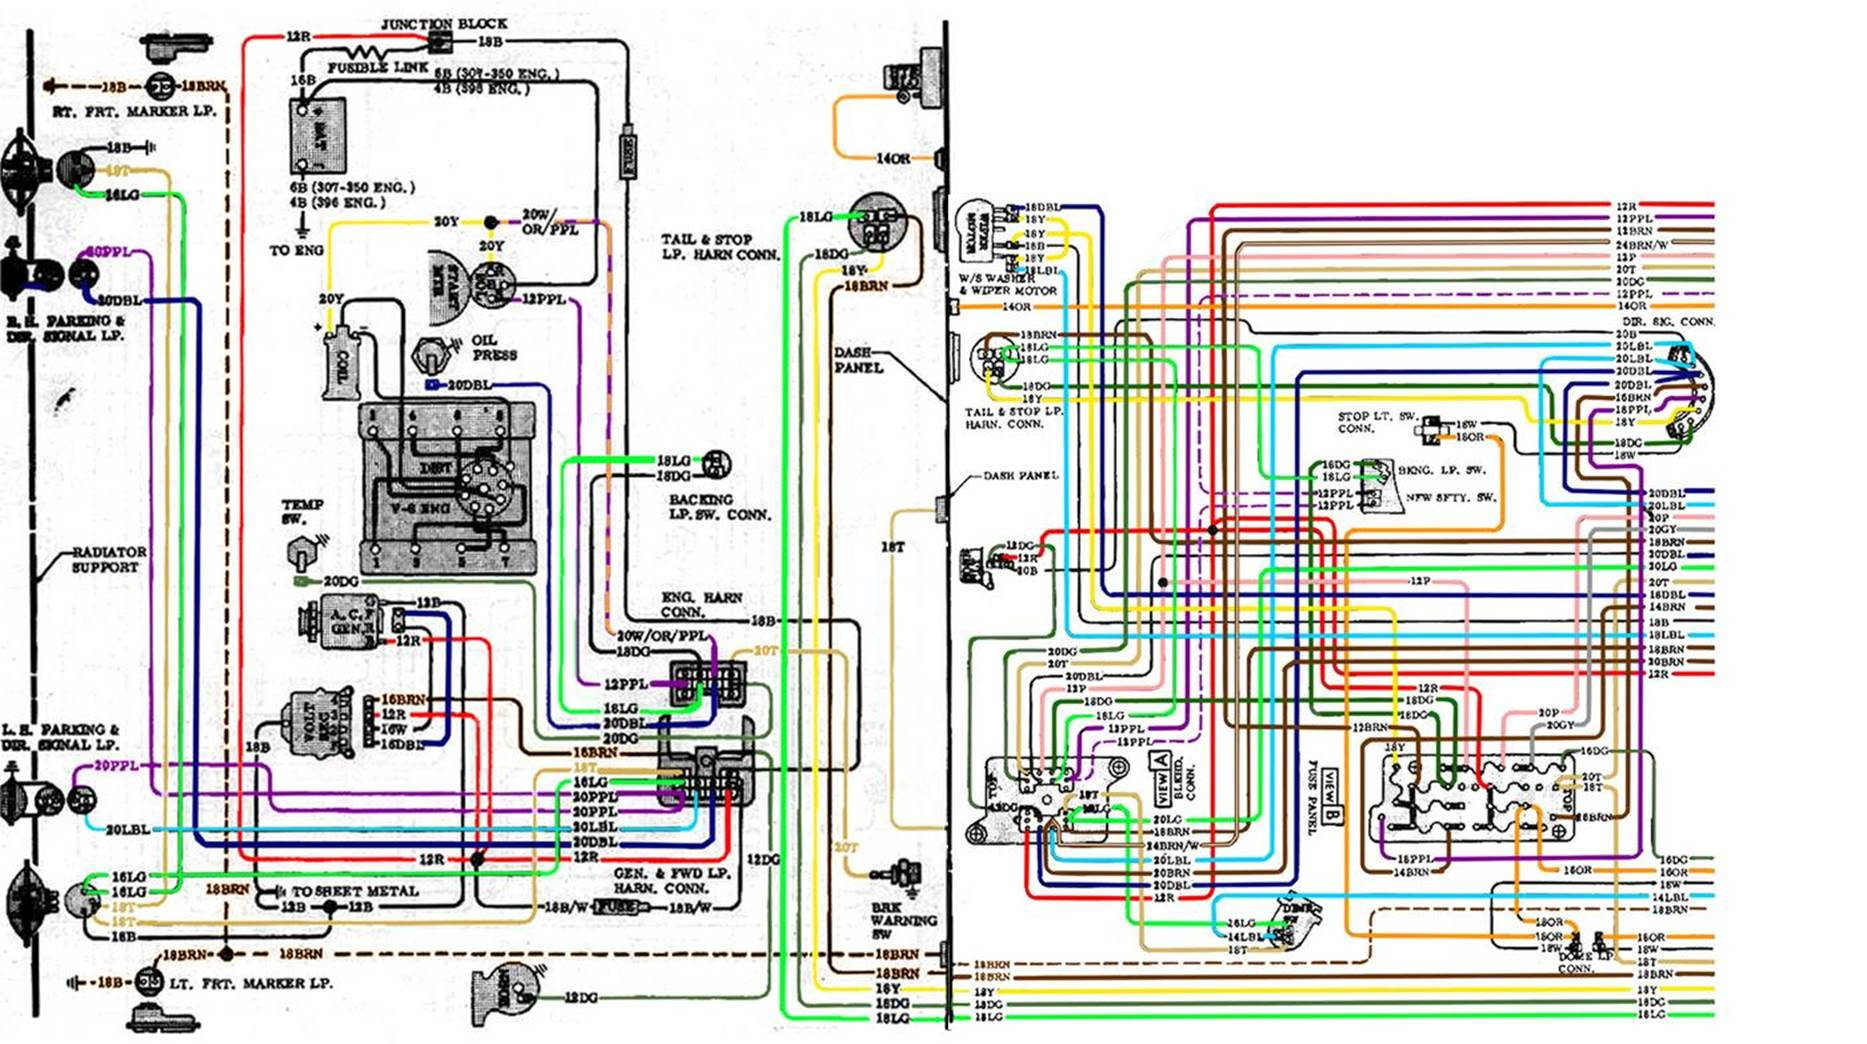 image002 67 72 chevy wiring diagram 1967 chevelle wiring diagram at webbmarketing.co